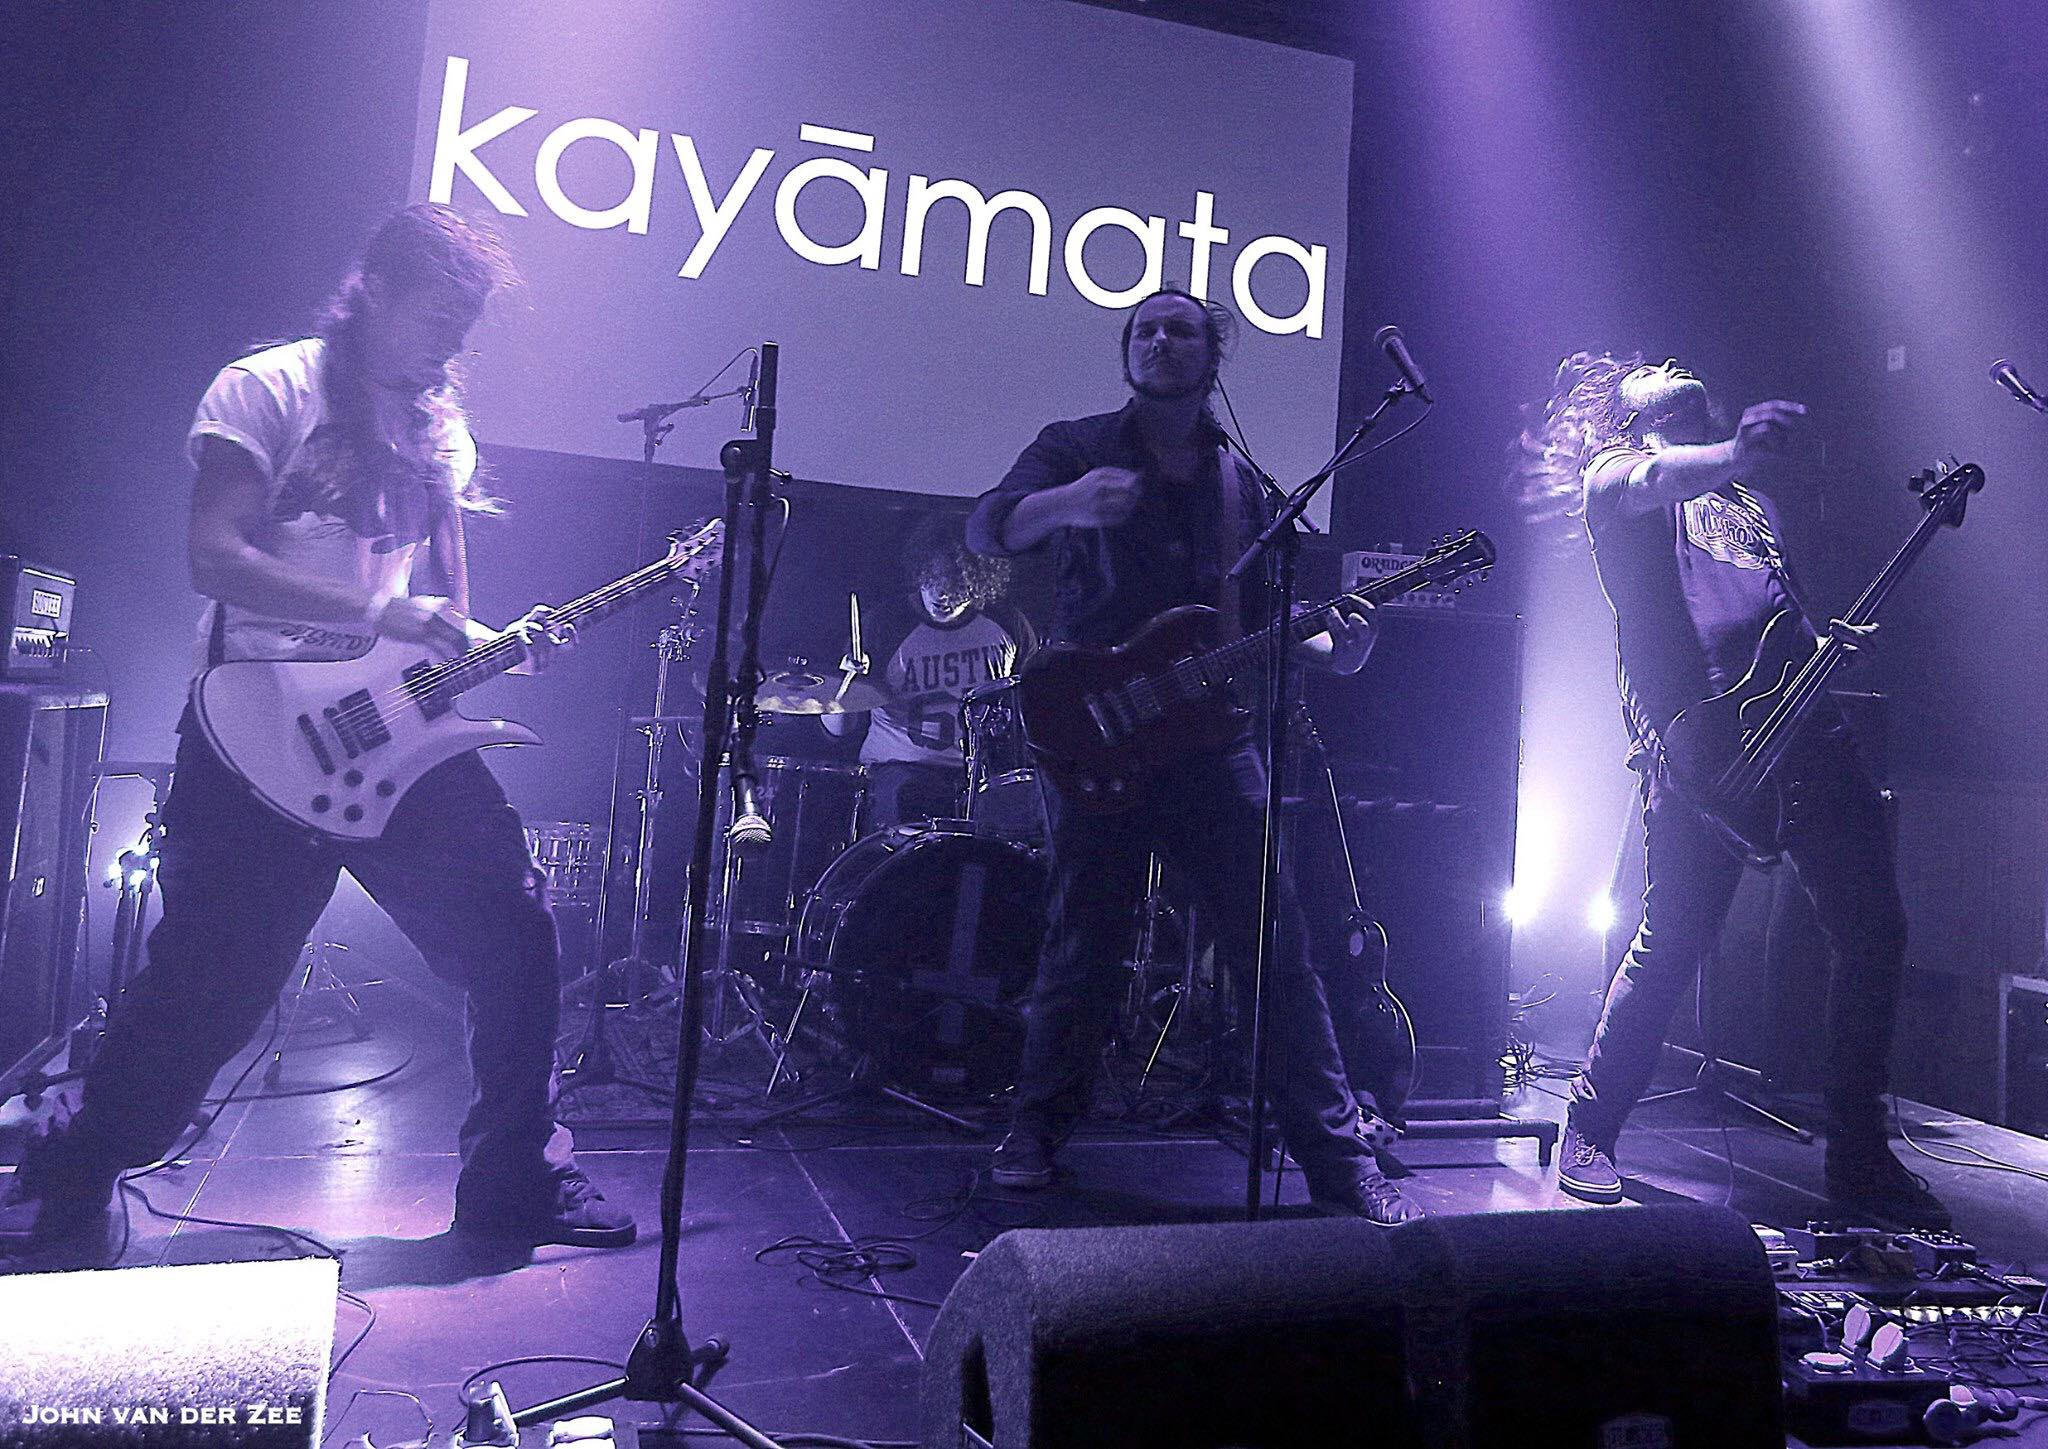 Kayamata supporting fellow band of friends Meadows @ Gebr. De Nobel in Leiden, Netherlands